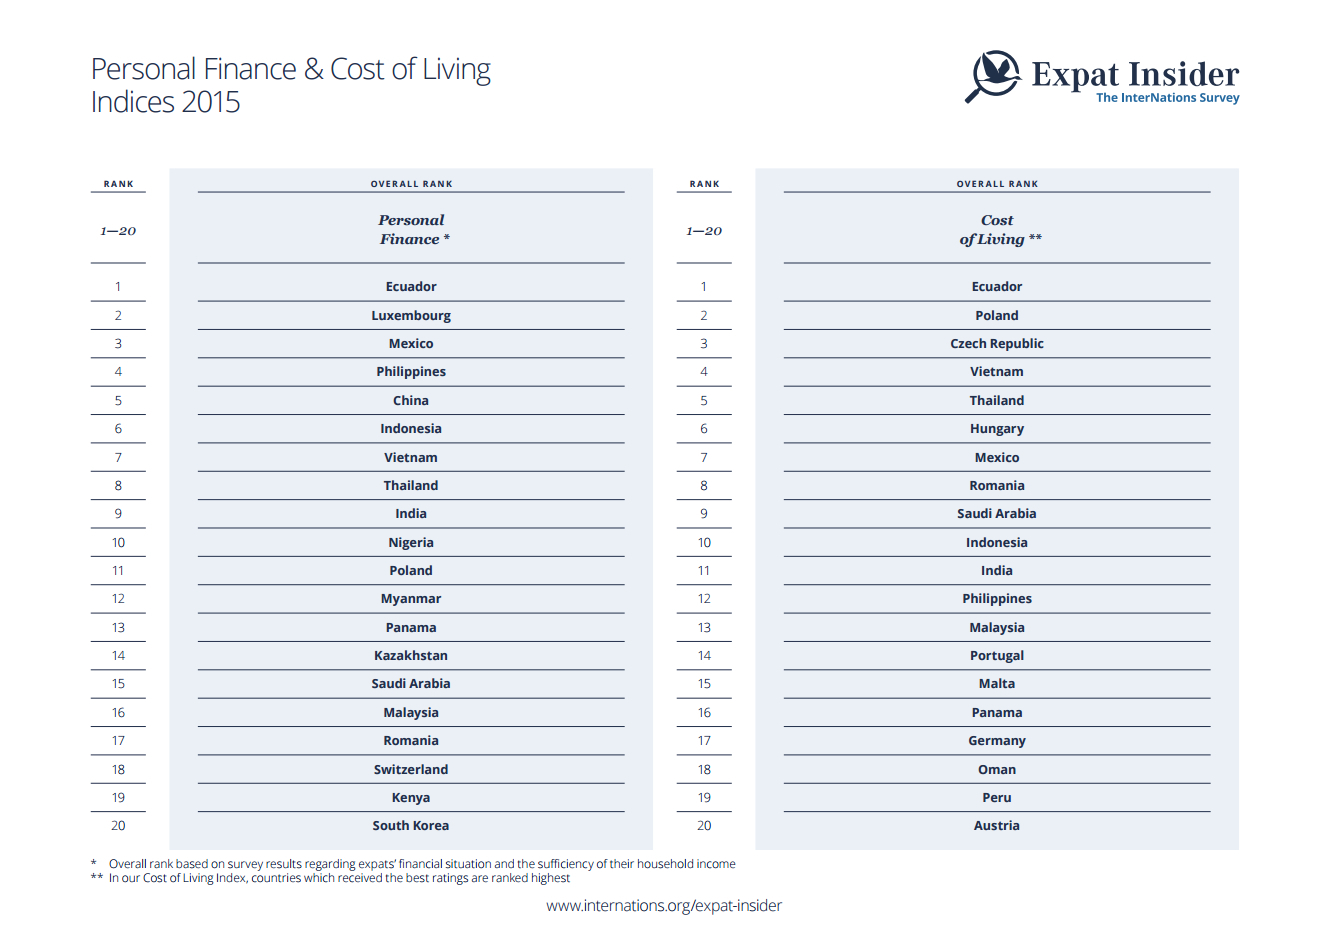 Personal Finance & Cost of Living Indices 2015